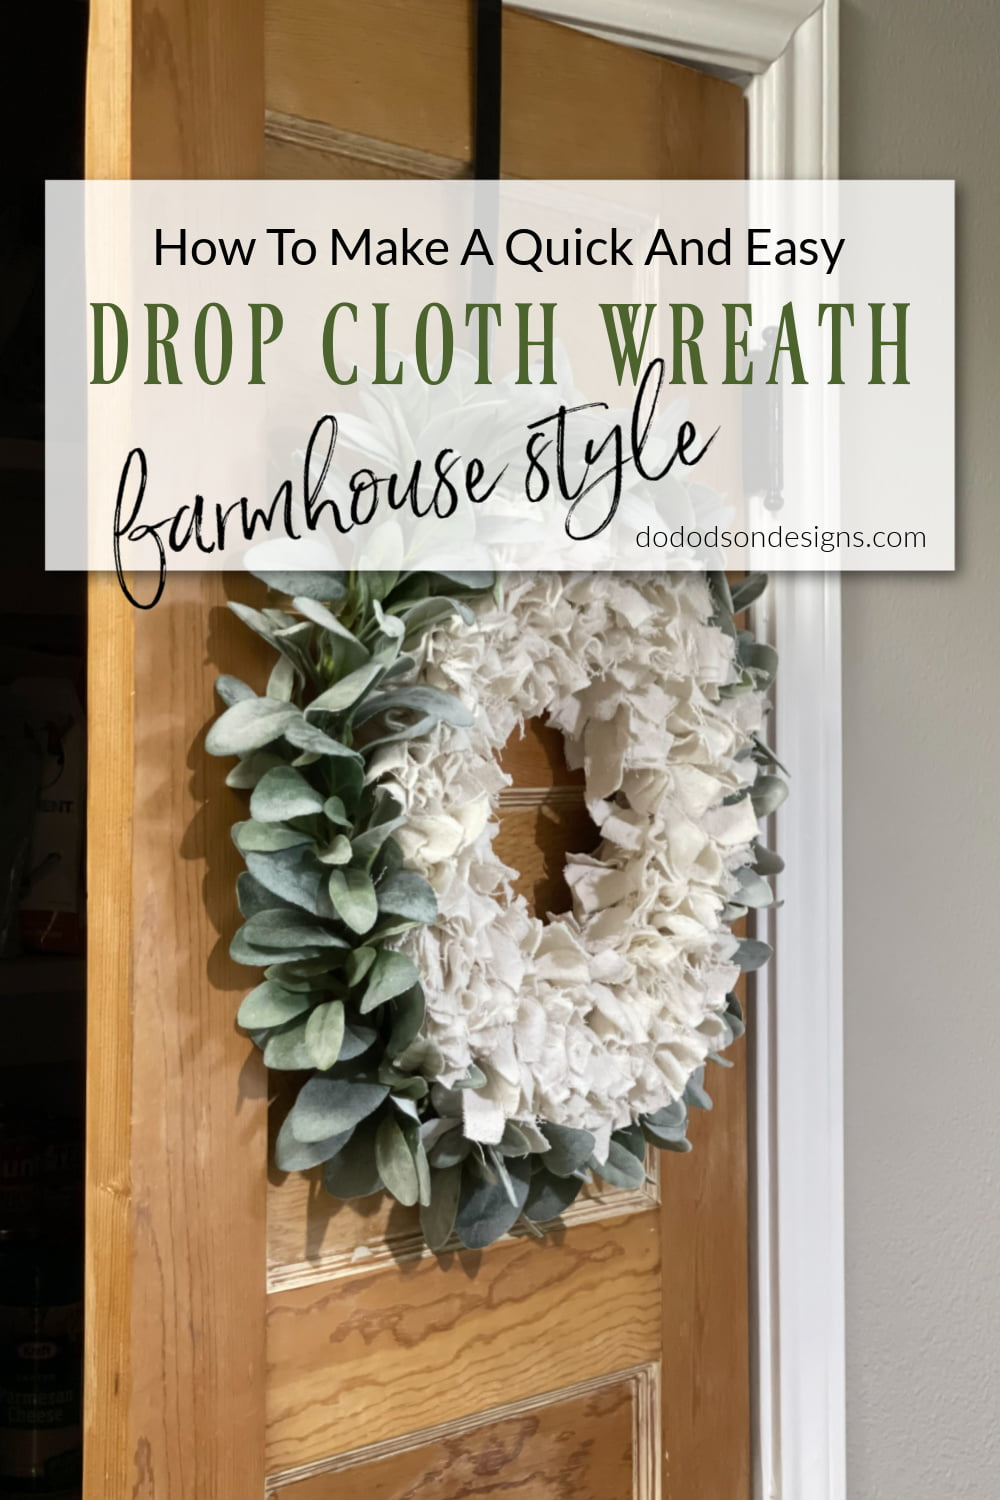 How To Make A Quick And Easy Drop Cloth Wreath With Photos